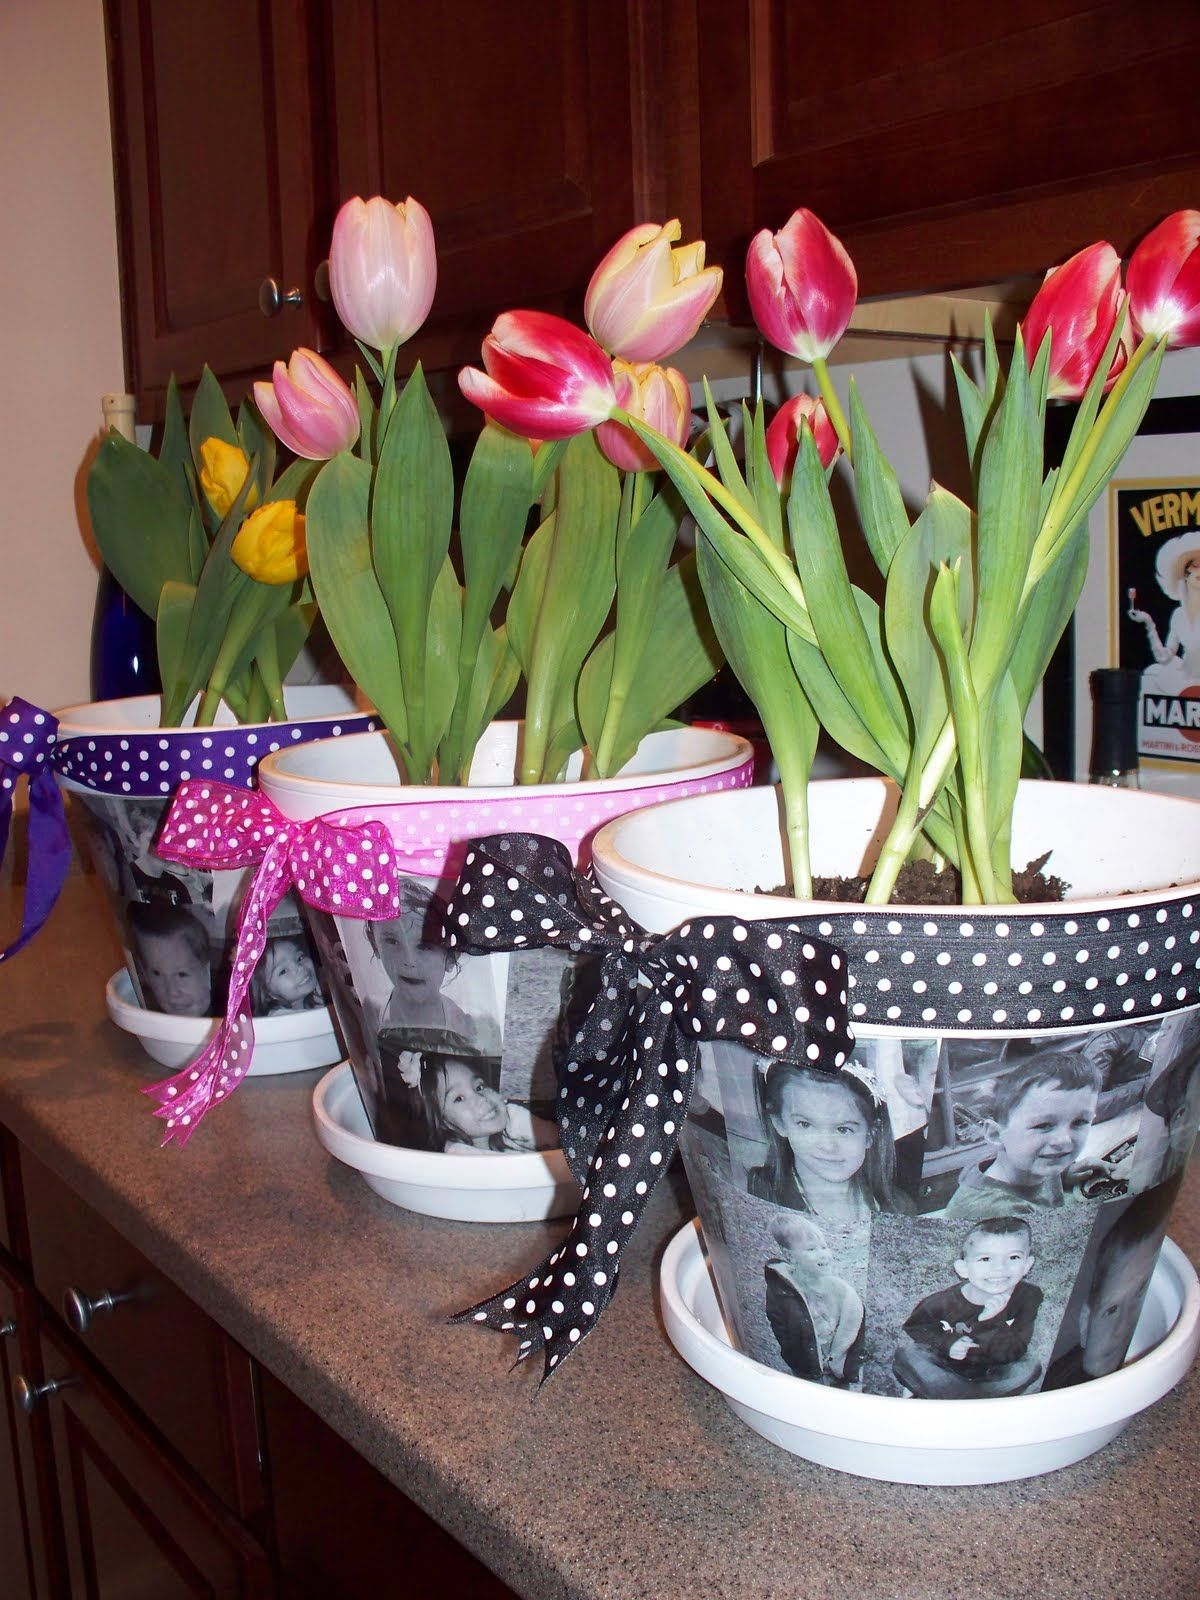 Mothers day idea using pics of the scouts through their years in mothers day gift idea personalized photo flower pots for mom or grandma modge family photos onto pots and add a pretty bow mothers day gift negle Image collections